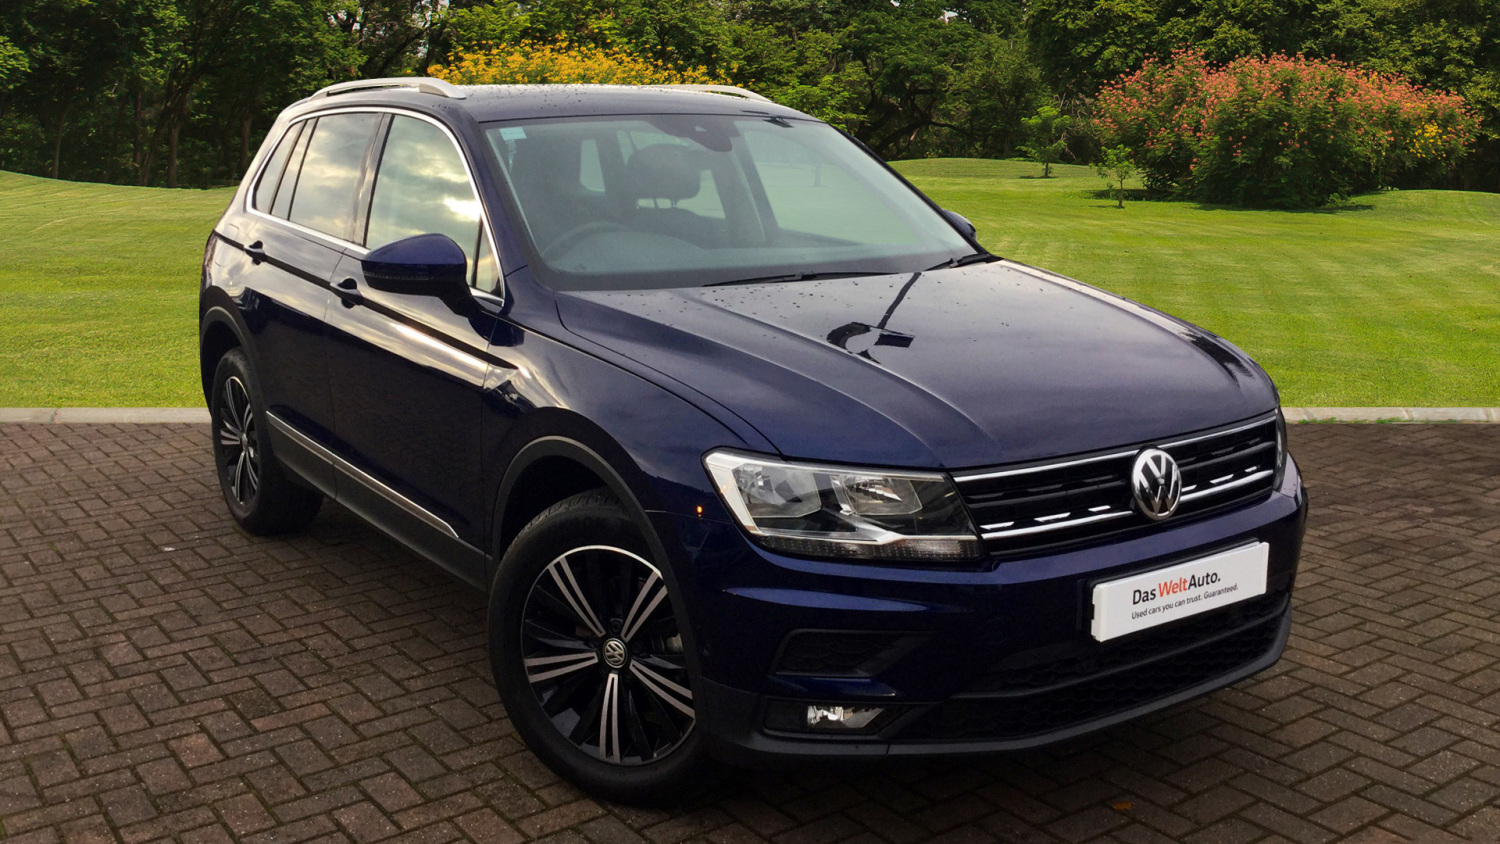 used volkswagen tiguan 2 0 tdi bmt 150 4motion se nav 5dr. Black Bedroom Furniture Sets. Home Design Ideas